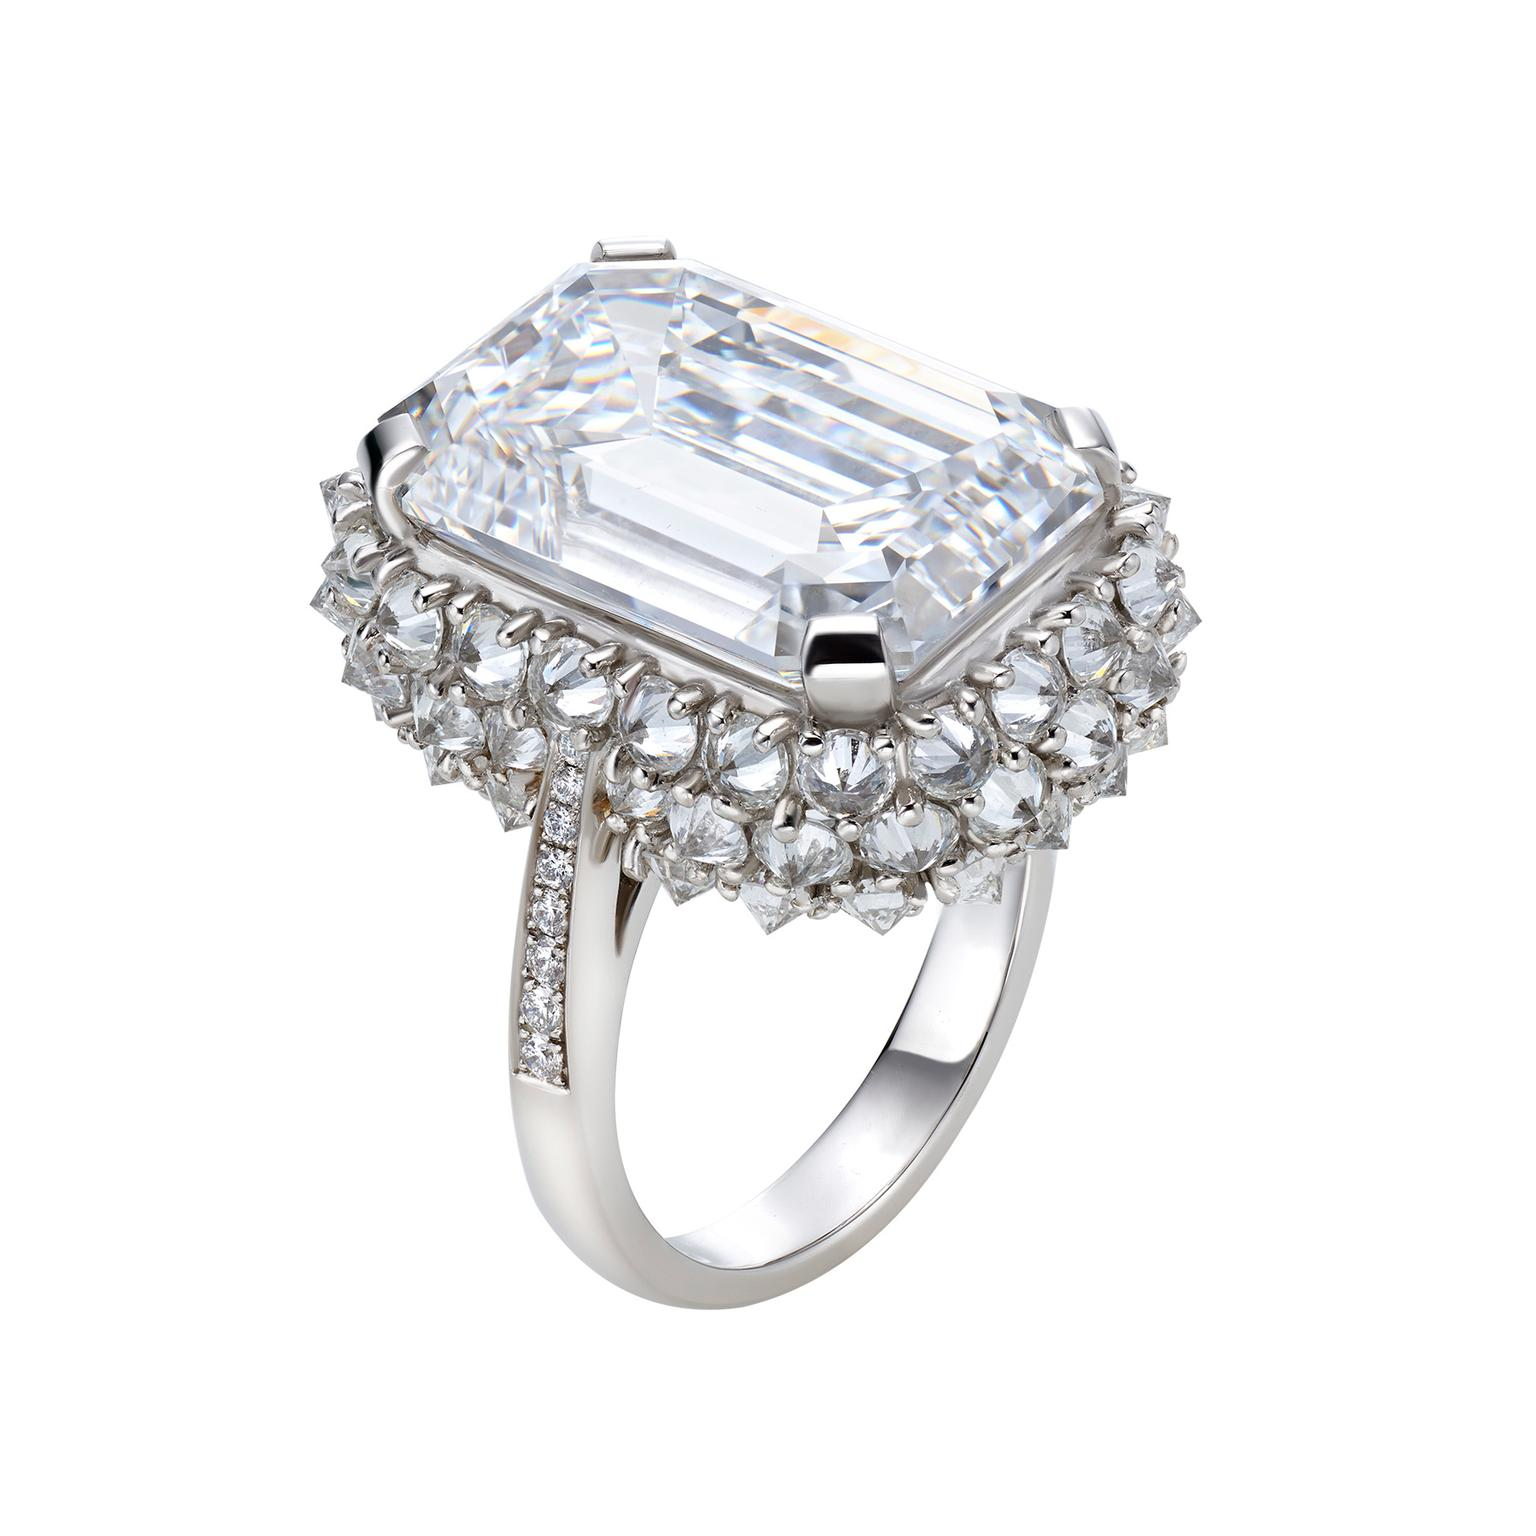 Bulgari Festa Storm emerald-cut diamond ring